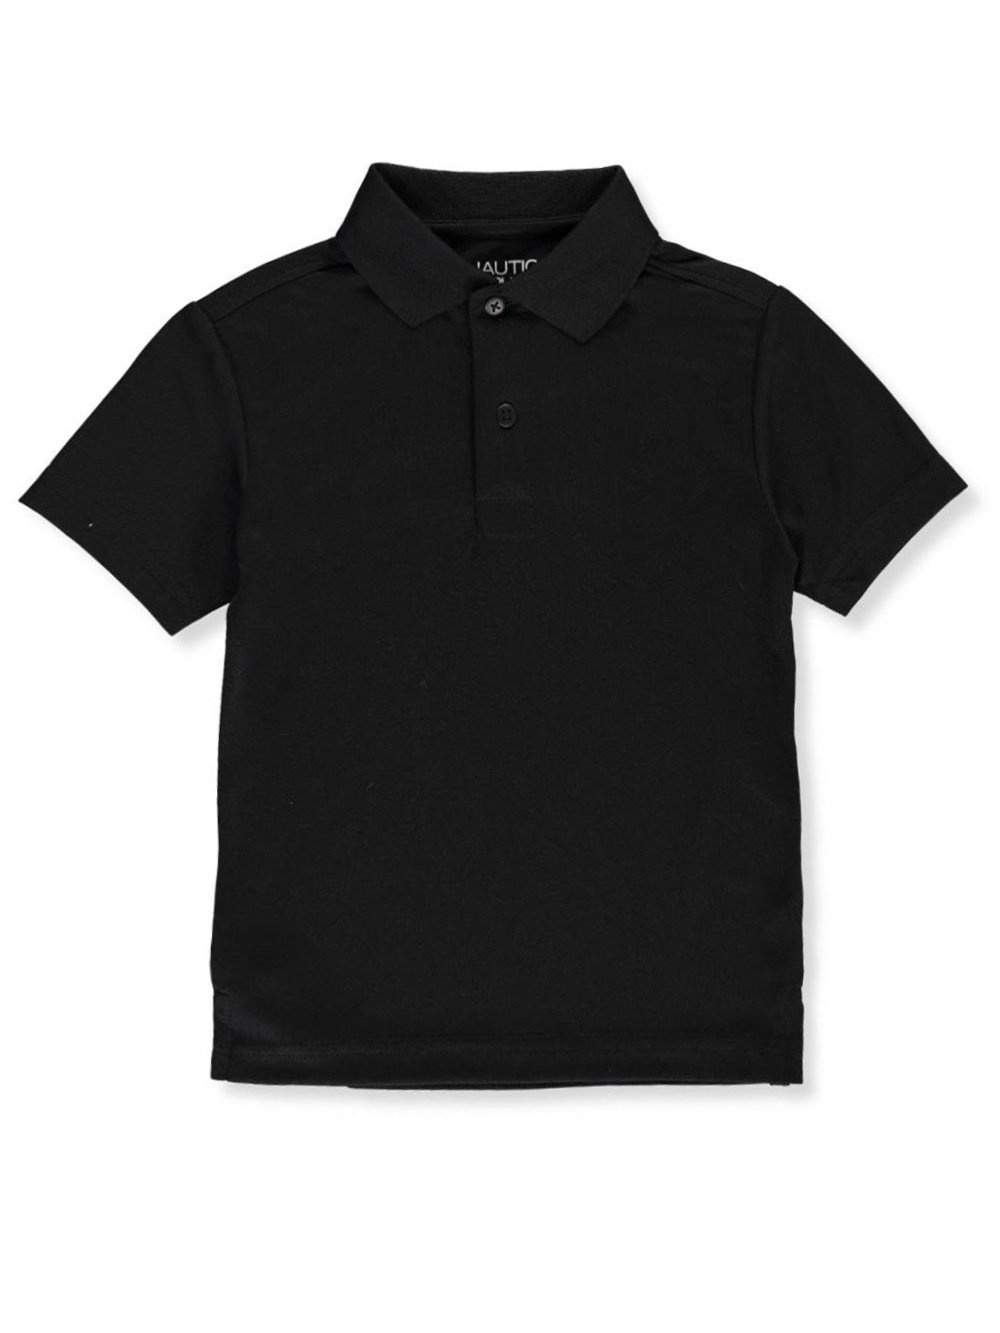 Nautica Little Boys' S/S Moisture Wicking Performance Polo